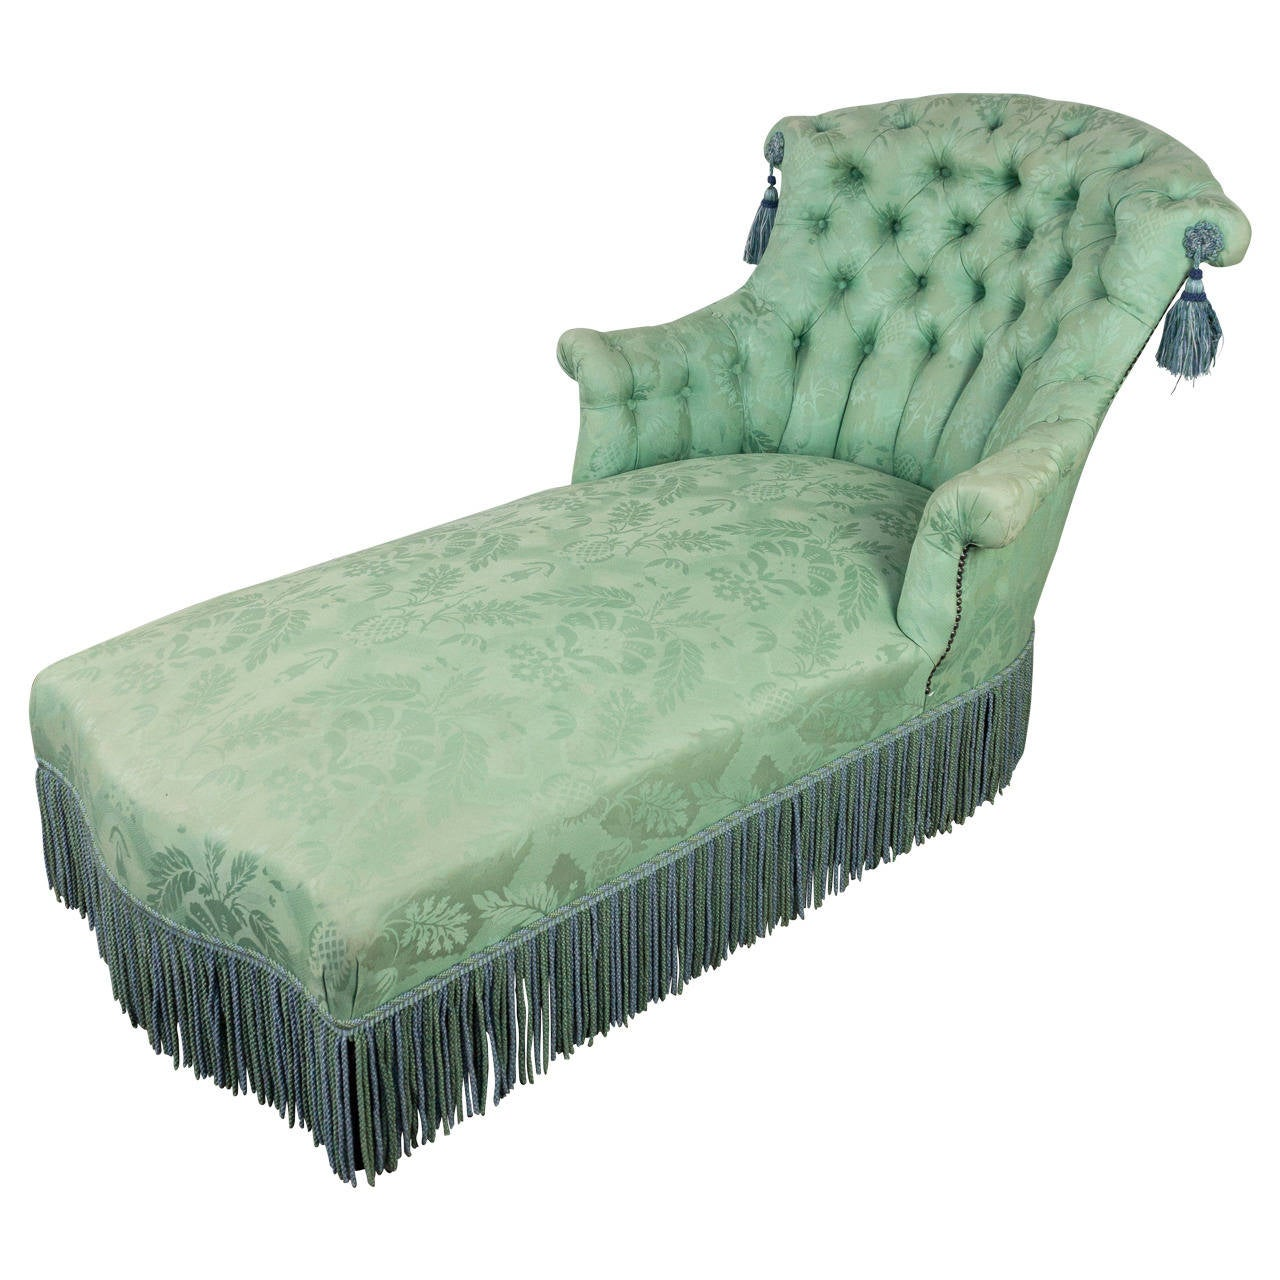 Chaise longue in pale green damask at 1stdibs for Black damask chaise longue